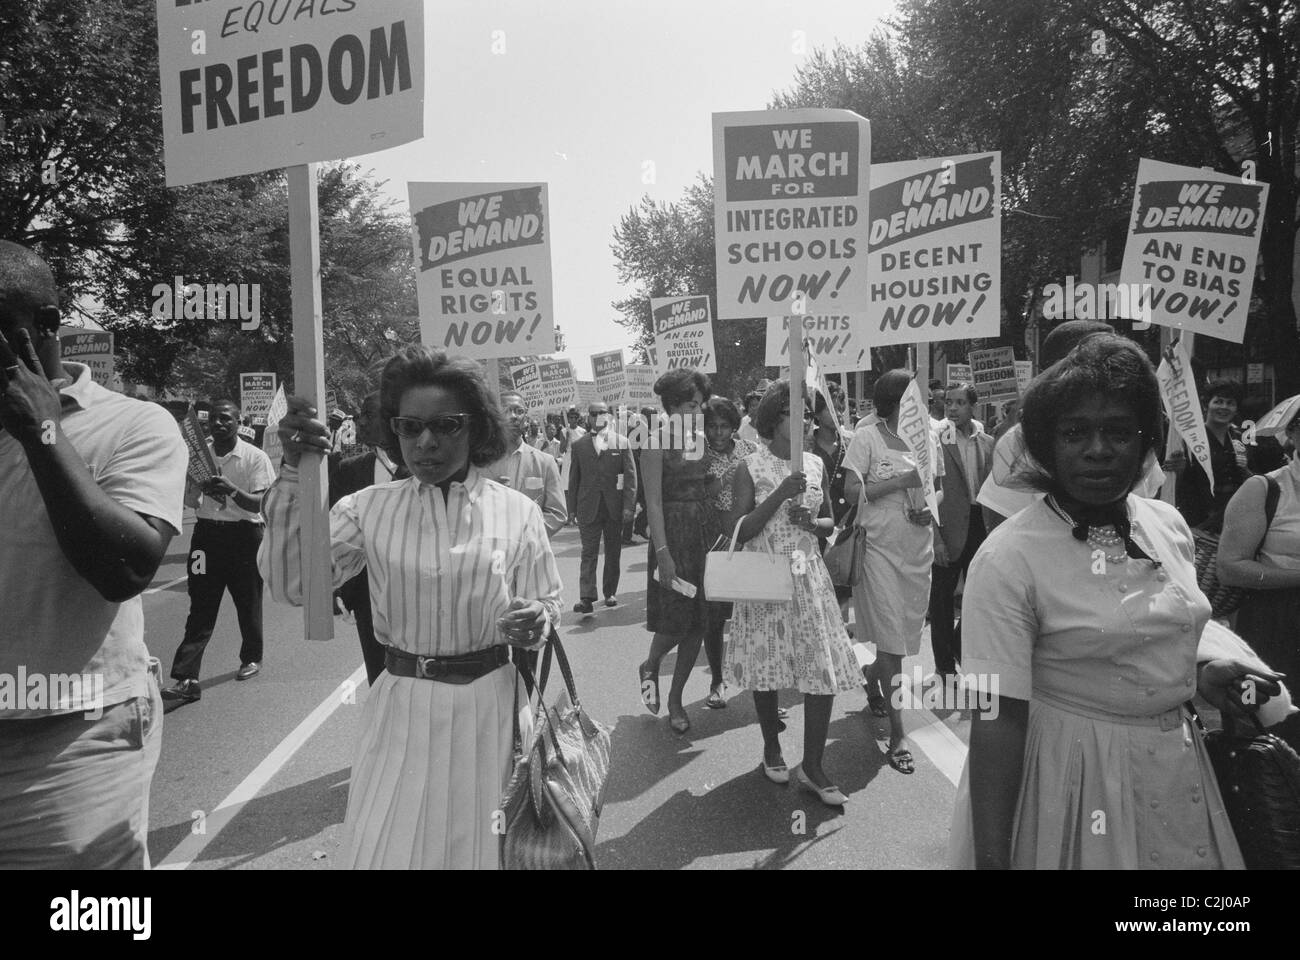 Civil Rights March in DC - Stock Image